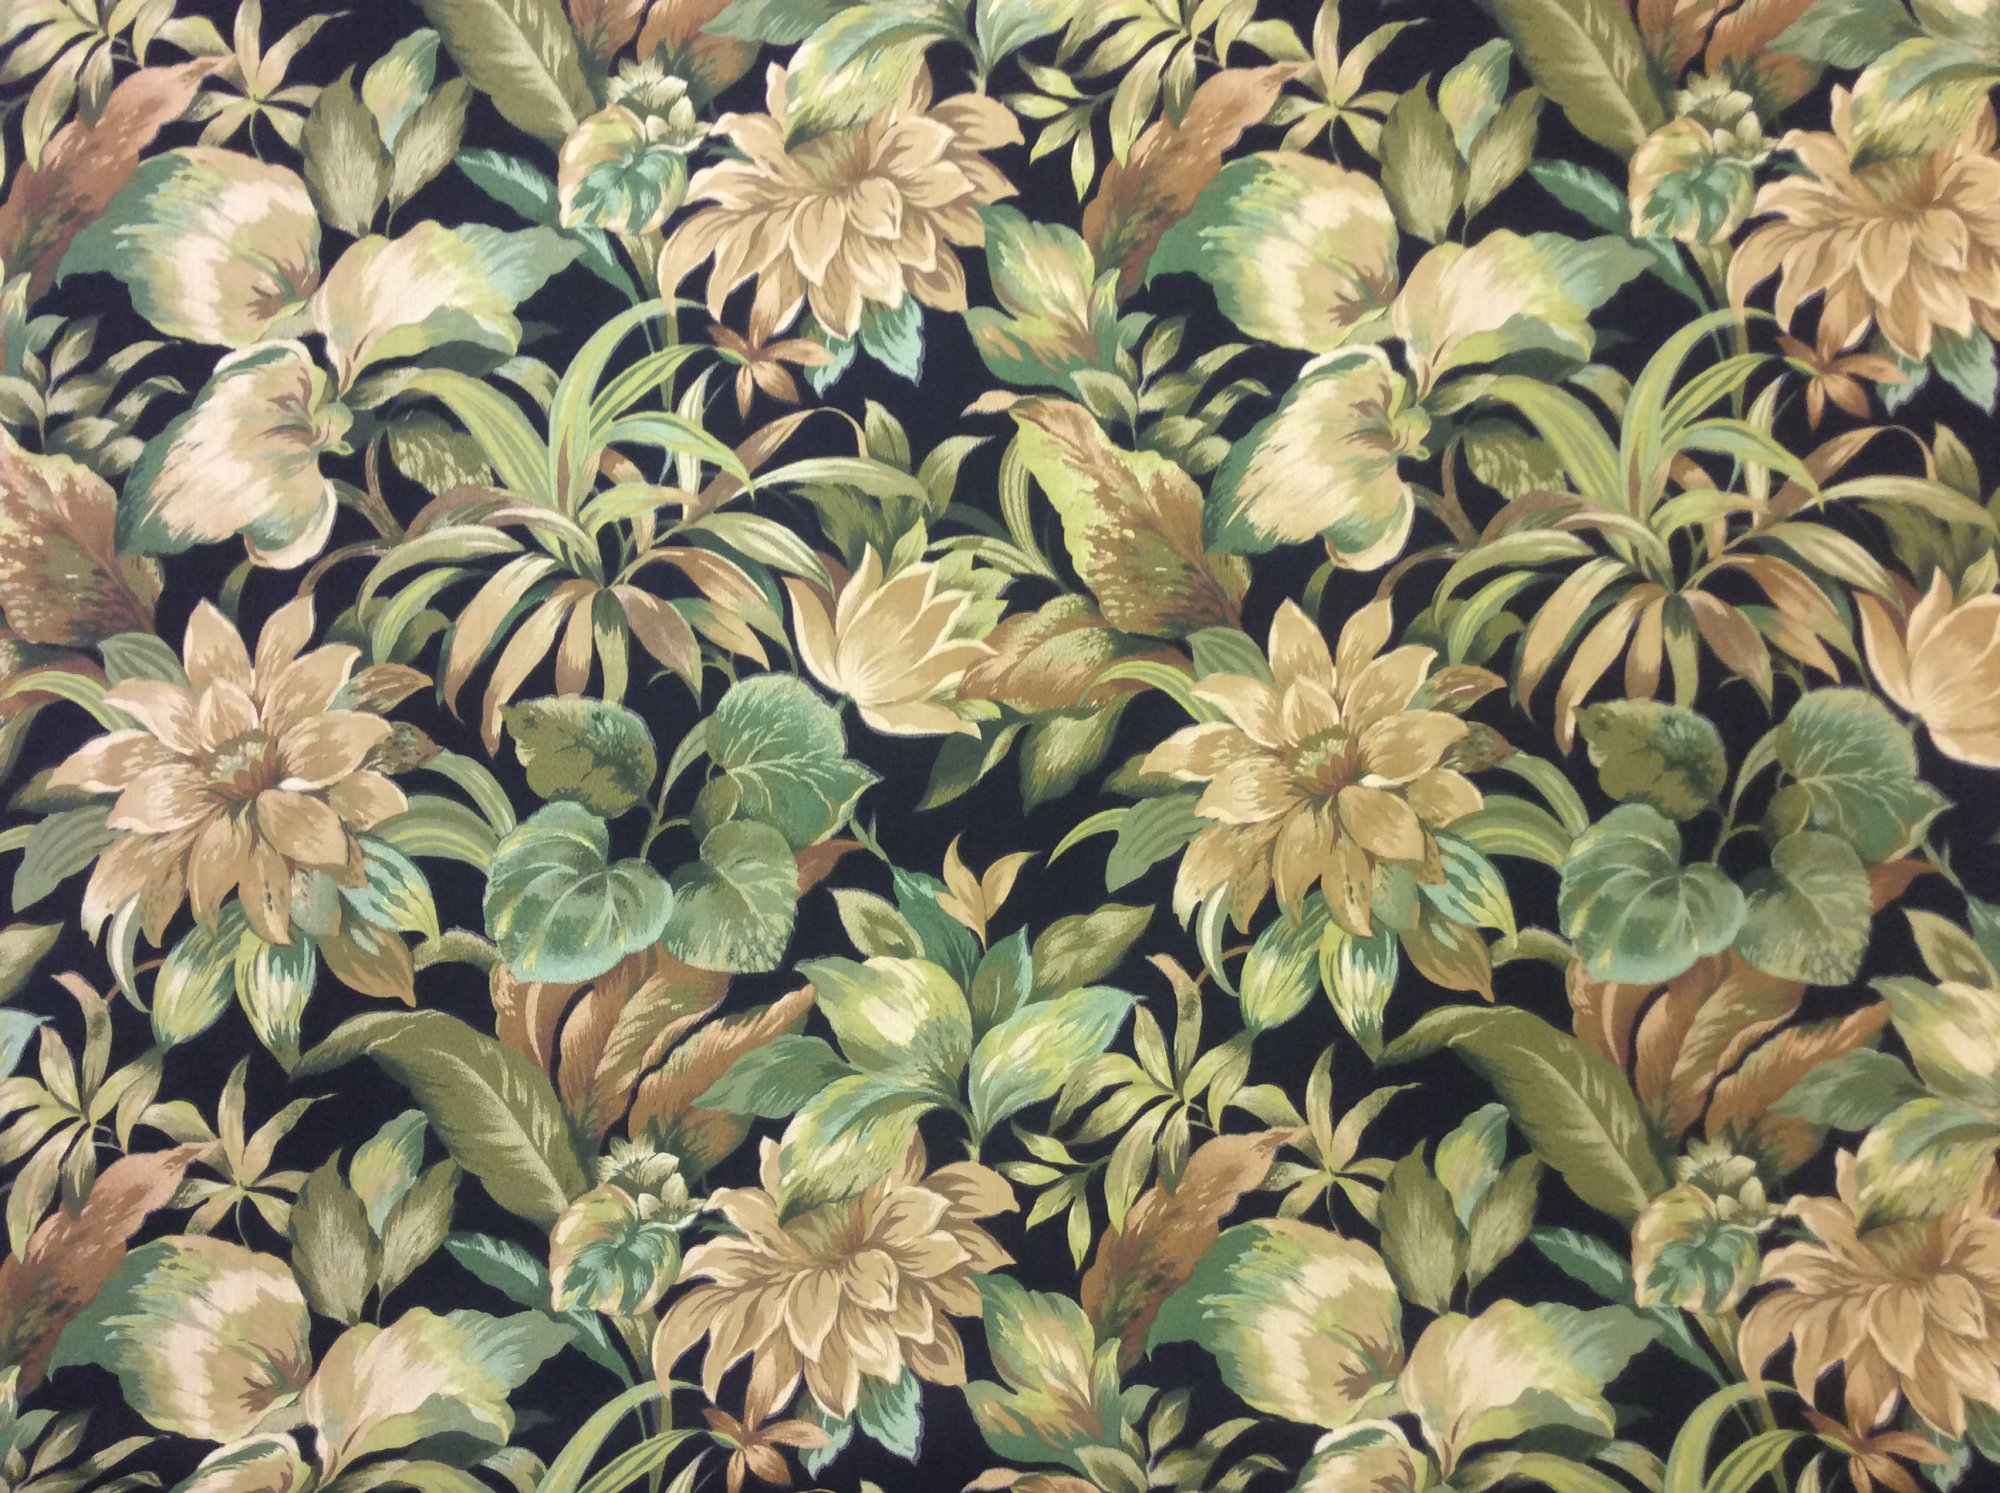 Large Scale Floral Tropical Outdoor Fabric Acrylic Print Fabric s307